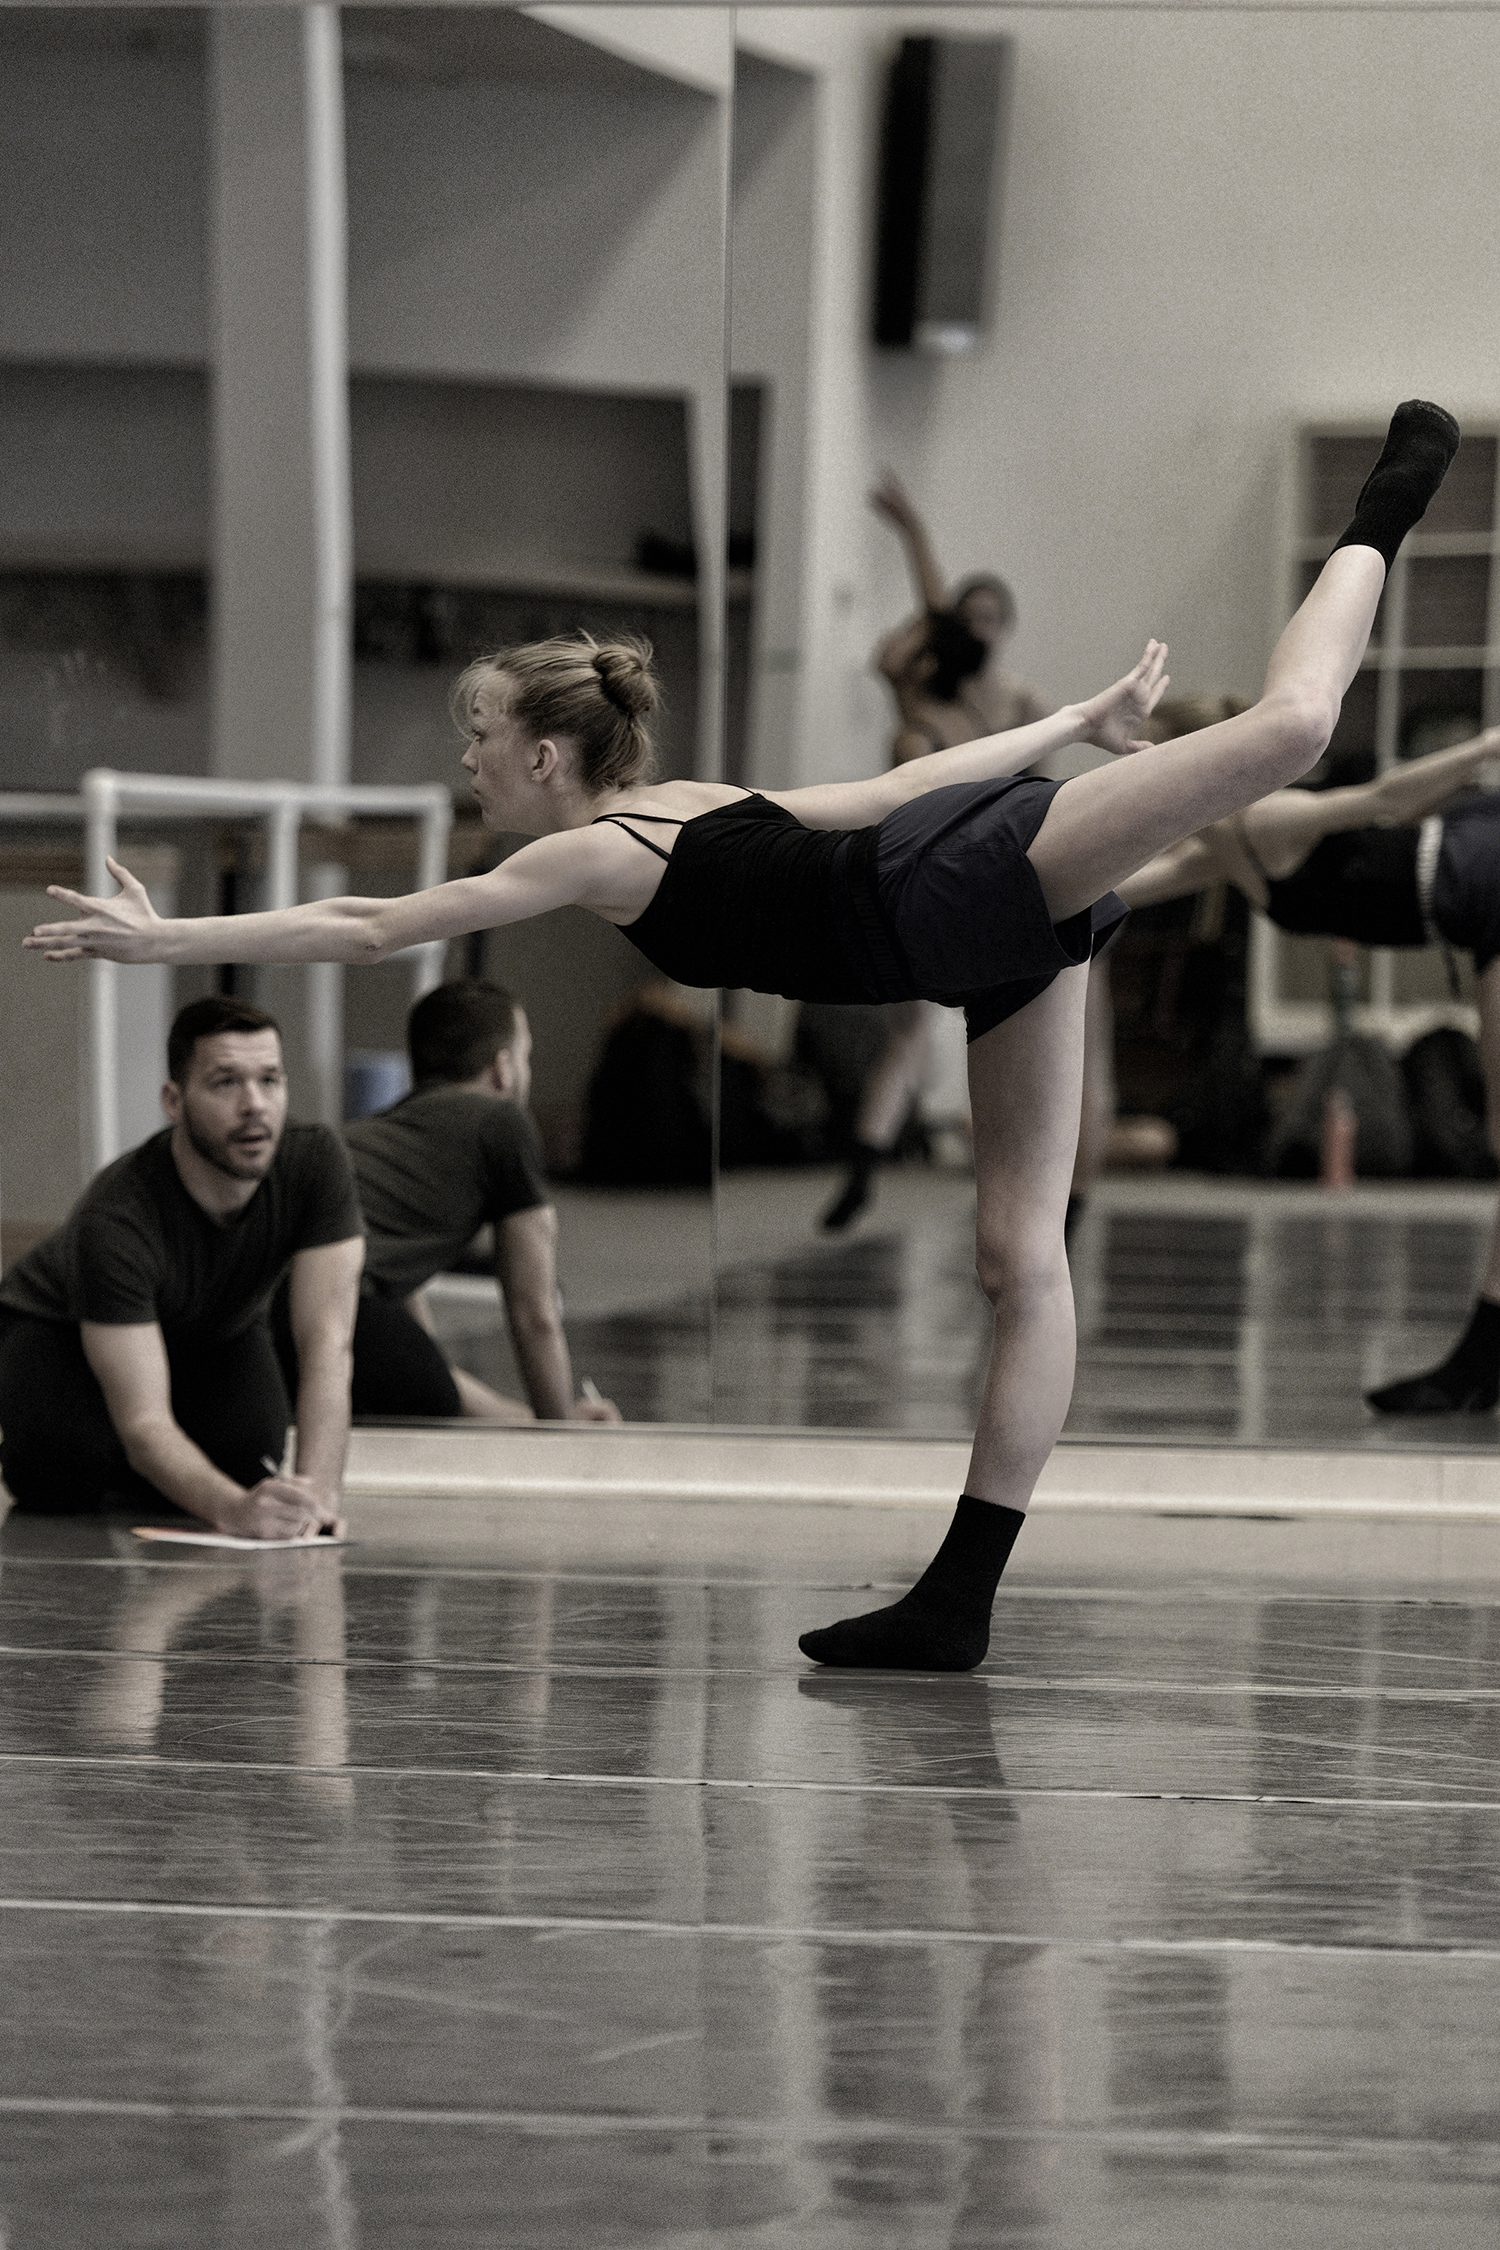 In rehearsal for a new work at Arts Umbrella (Vancouver)with Cordelia Pentland.Photo by Michael Slobodian, courtesy of Arts Umbrella.